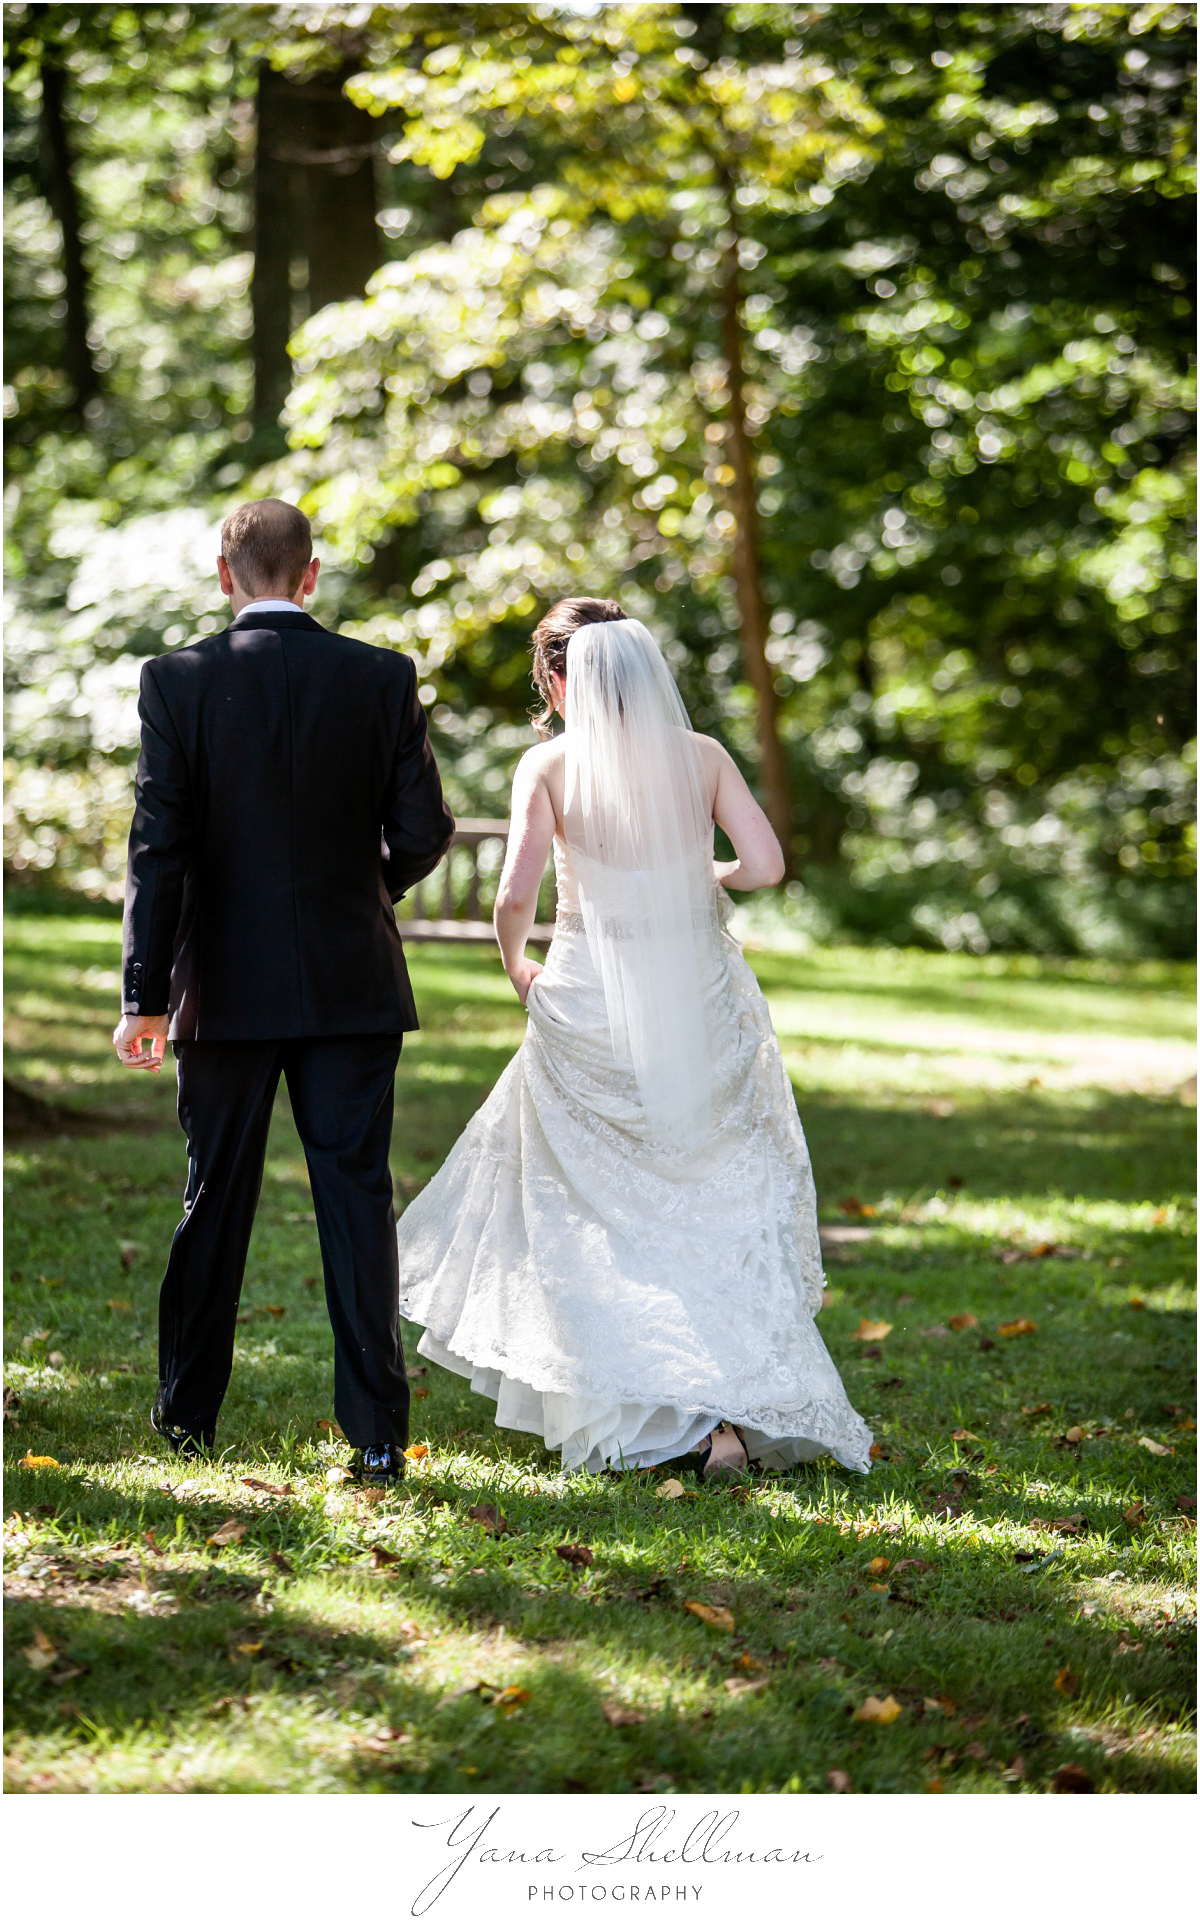 Radnor Valley Country Club Wedding Photos by LBI Wedding Photographers - Alex+Kelli Wedding Photos